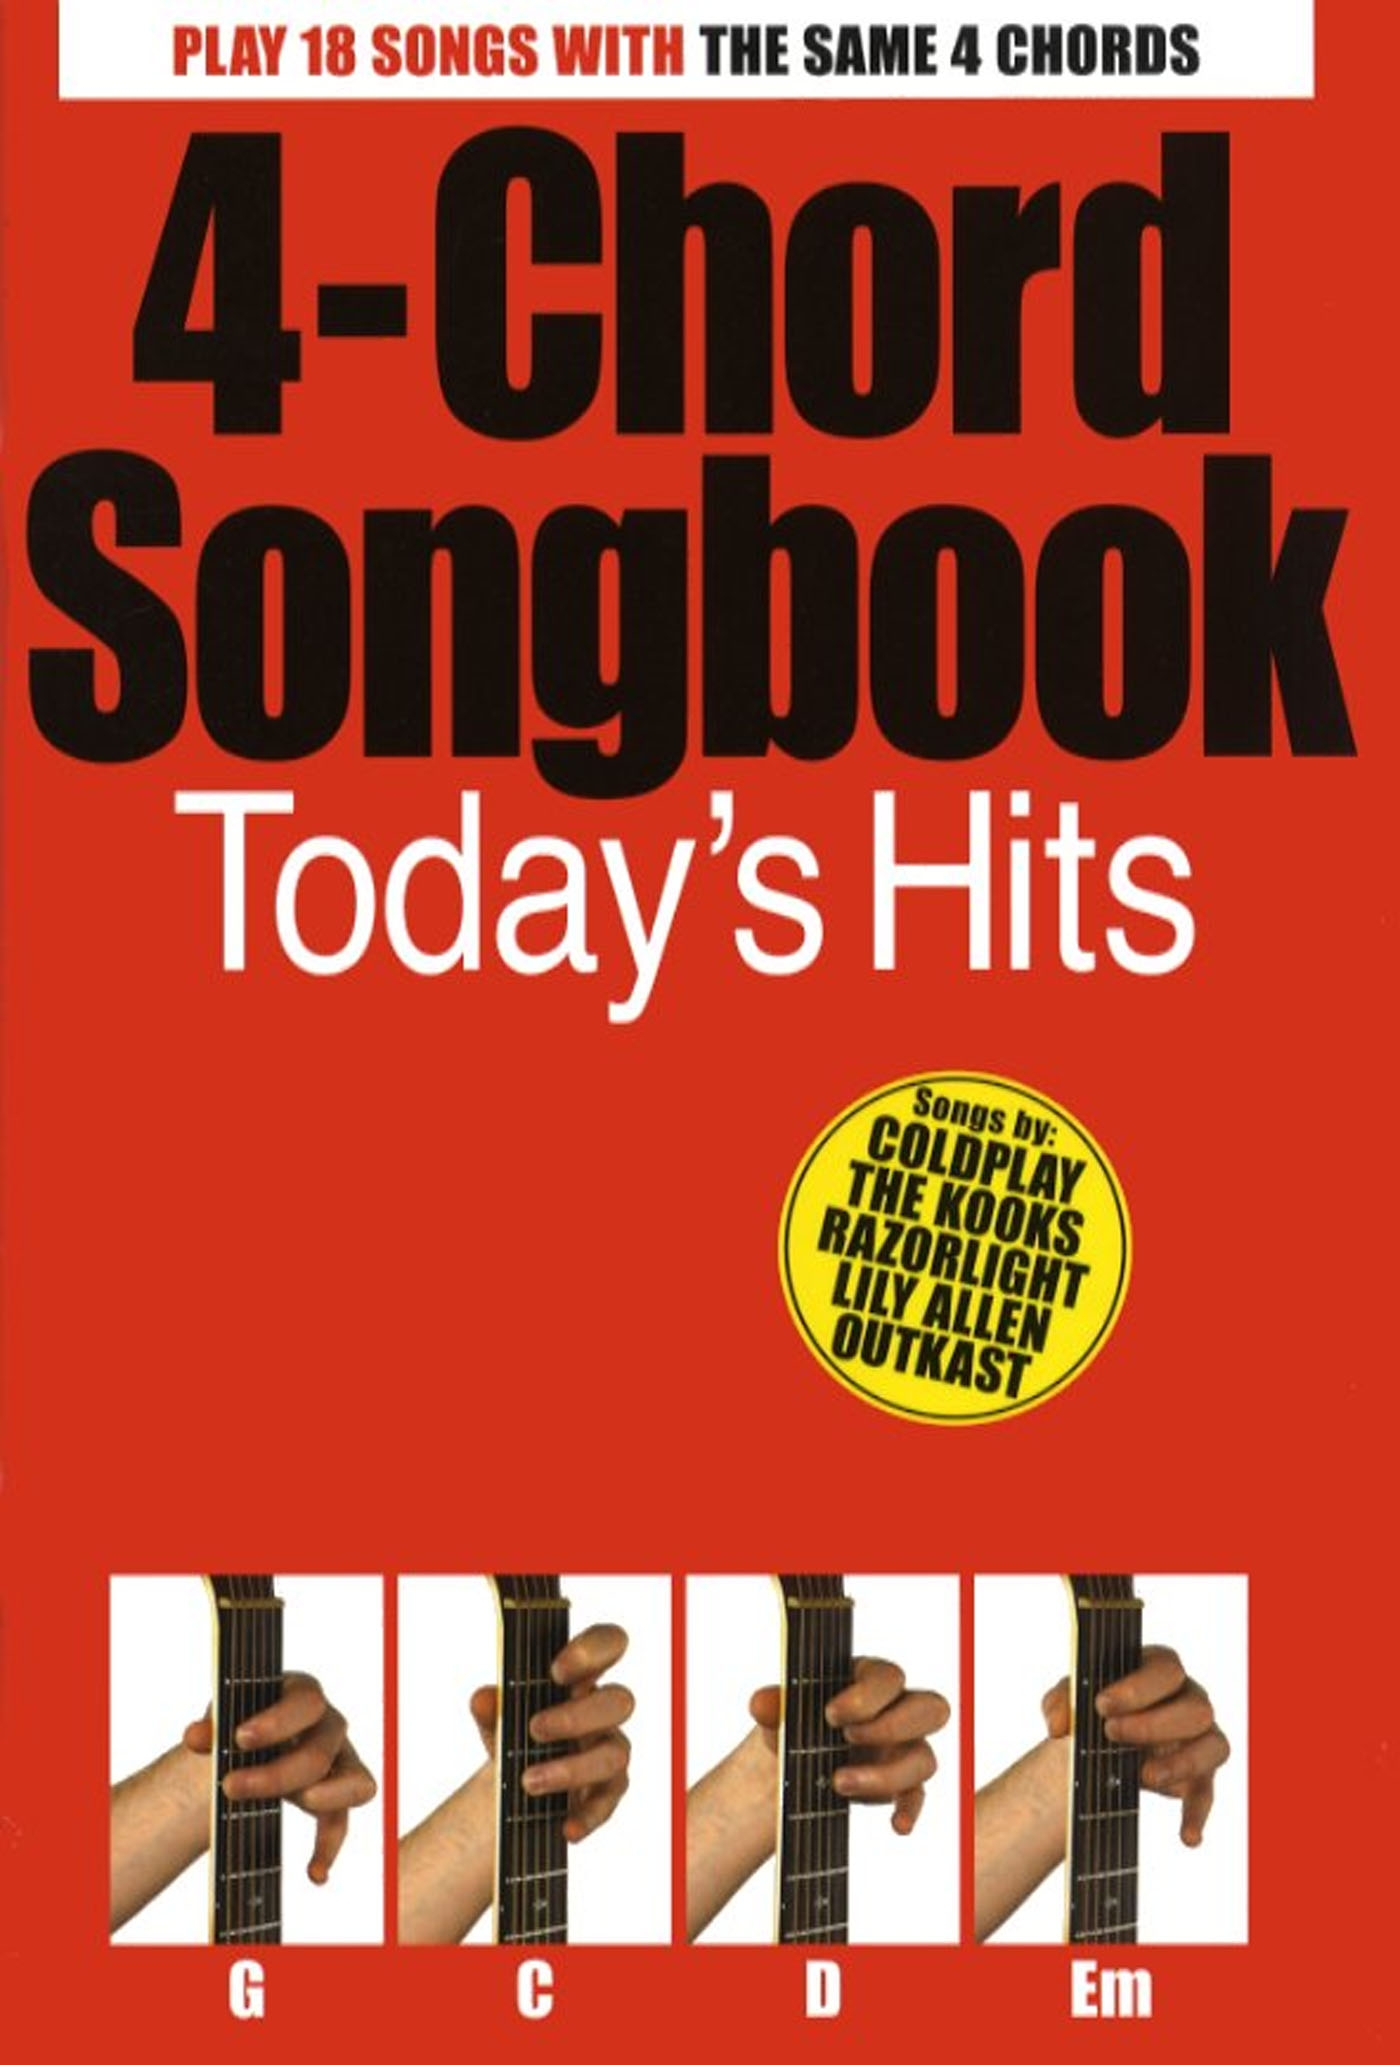 4 Chord Songbook Play Todays Hits With 4 Guitar Chords Sheet